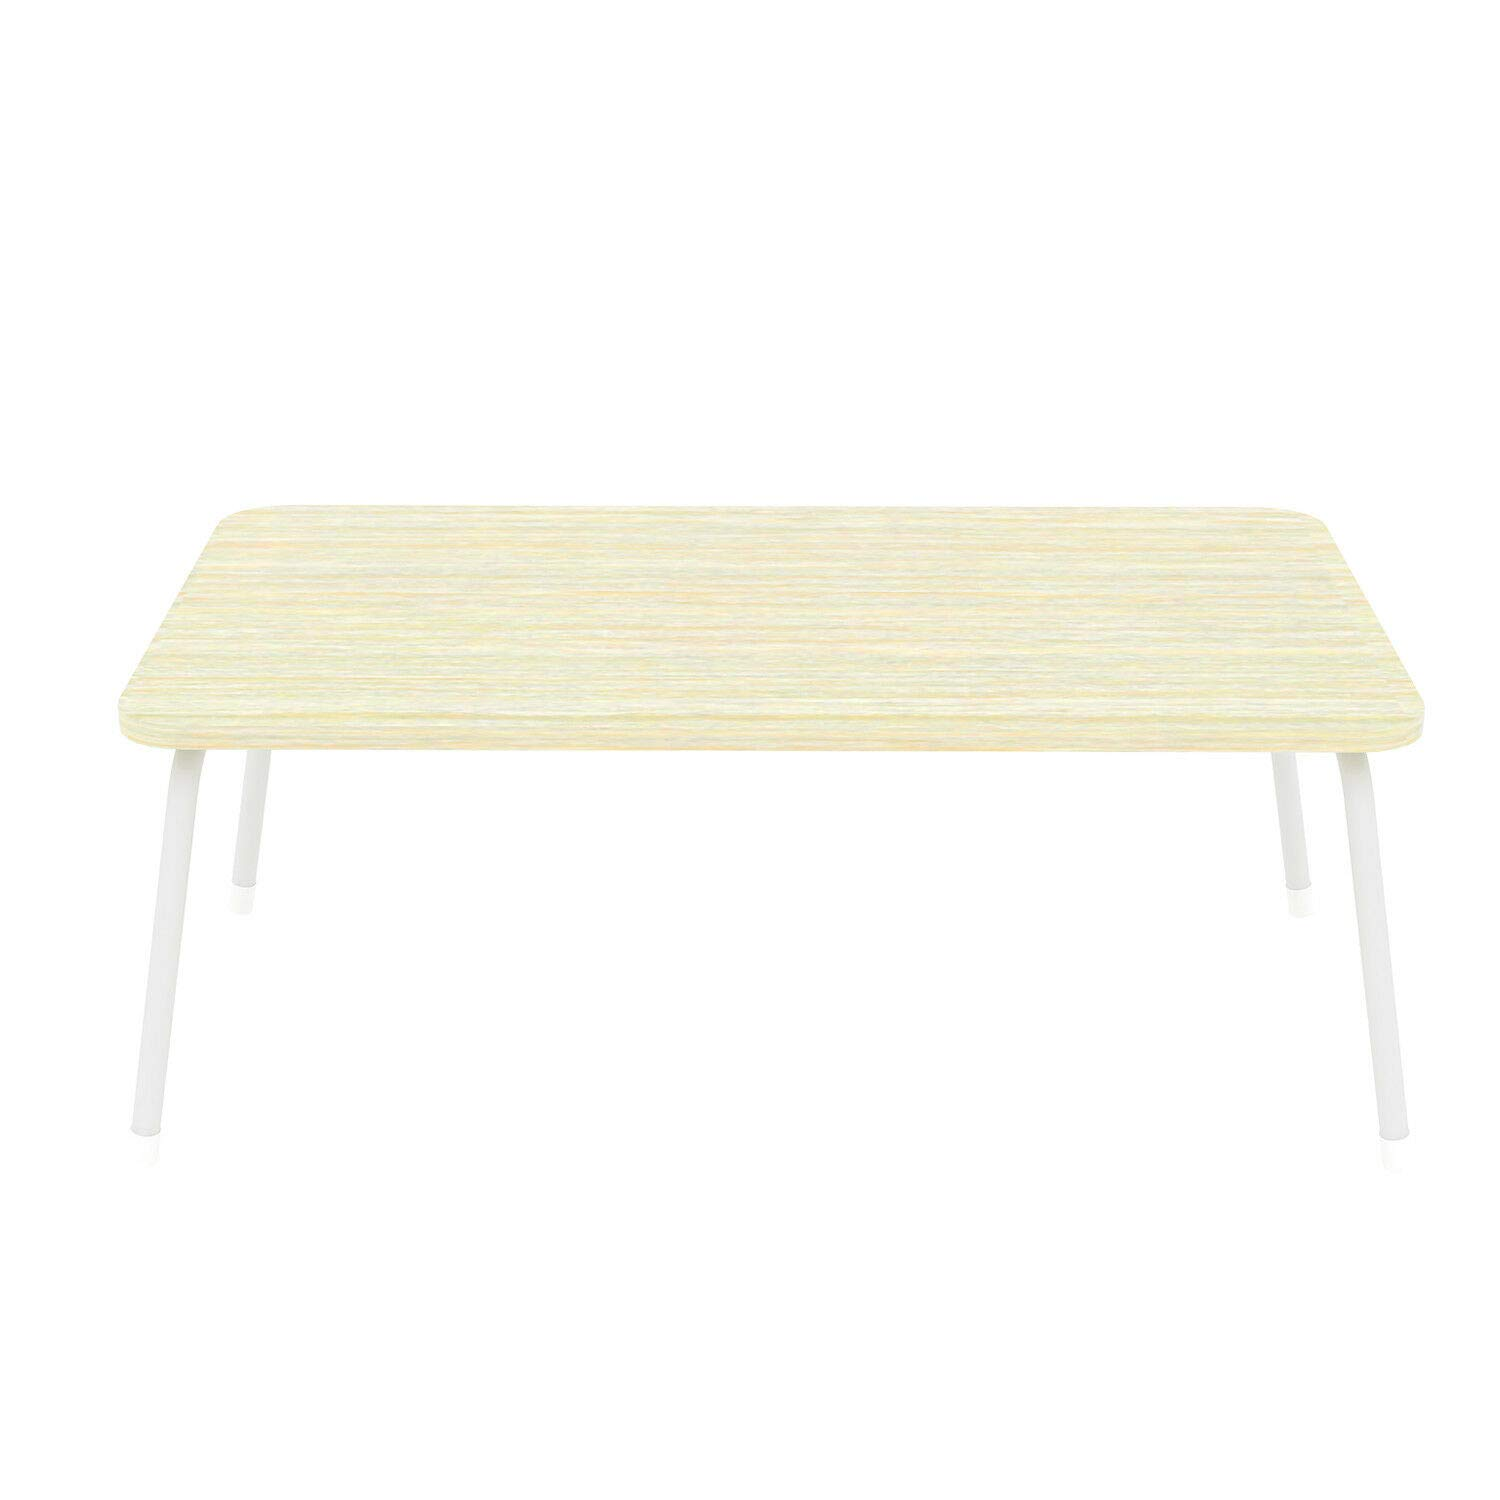 WYB Bed Table , Folding Computer Desk Big Bed Tray Easy and Convenient